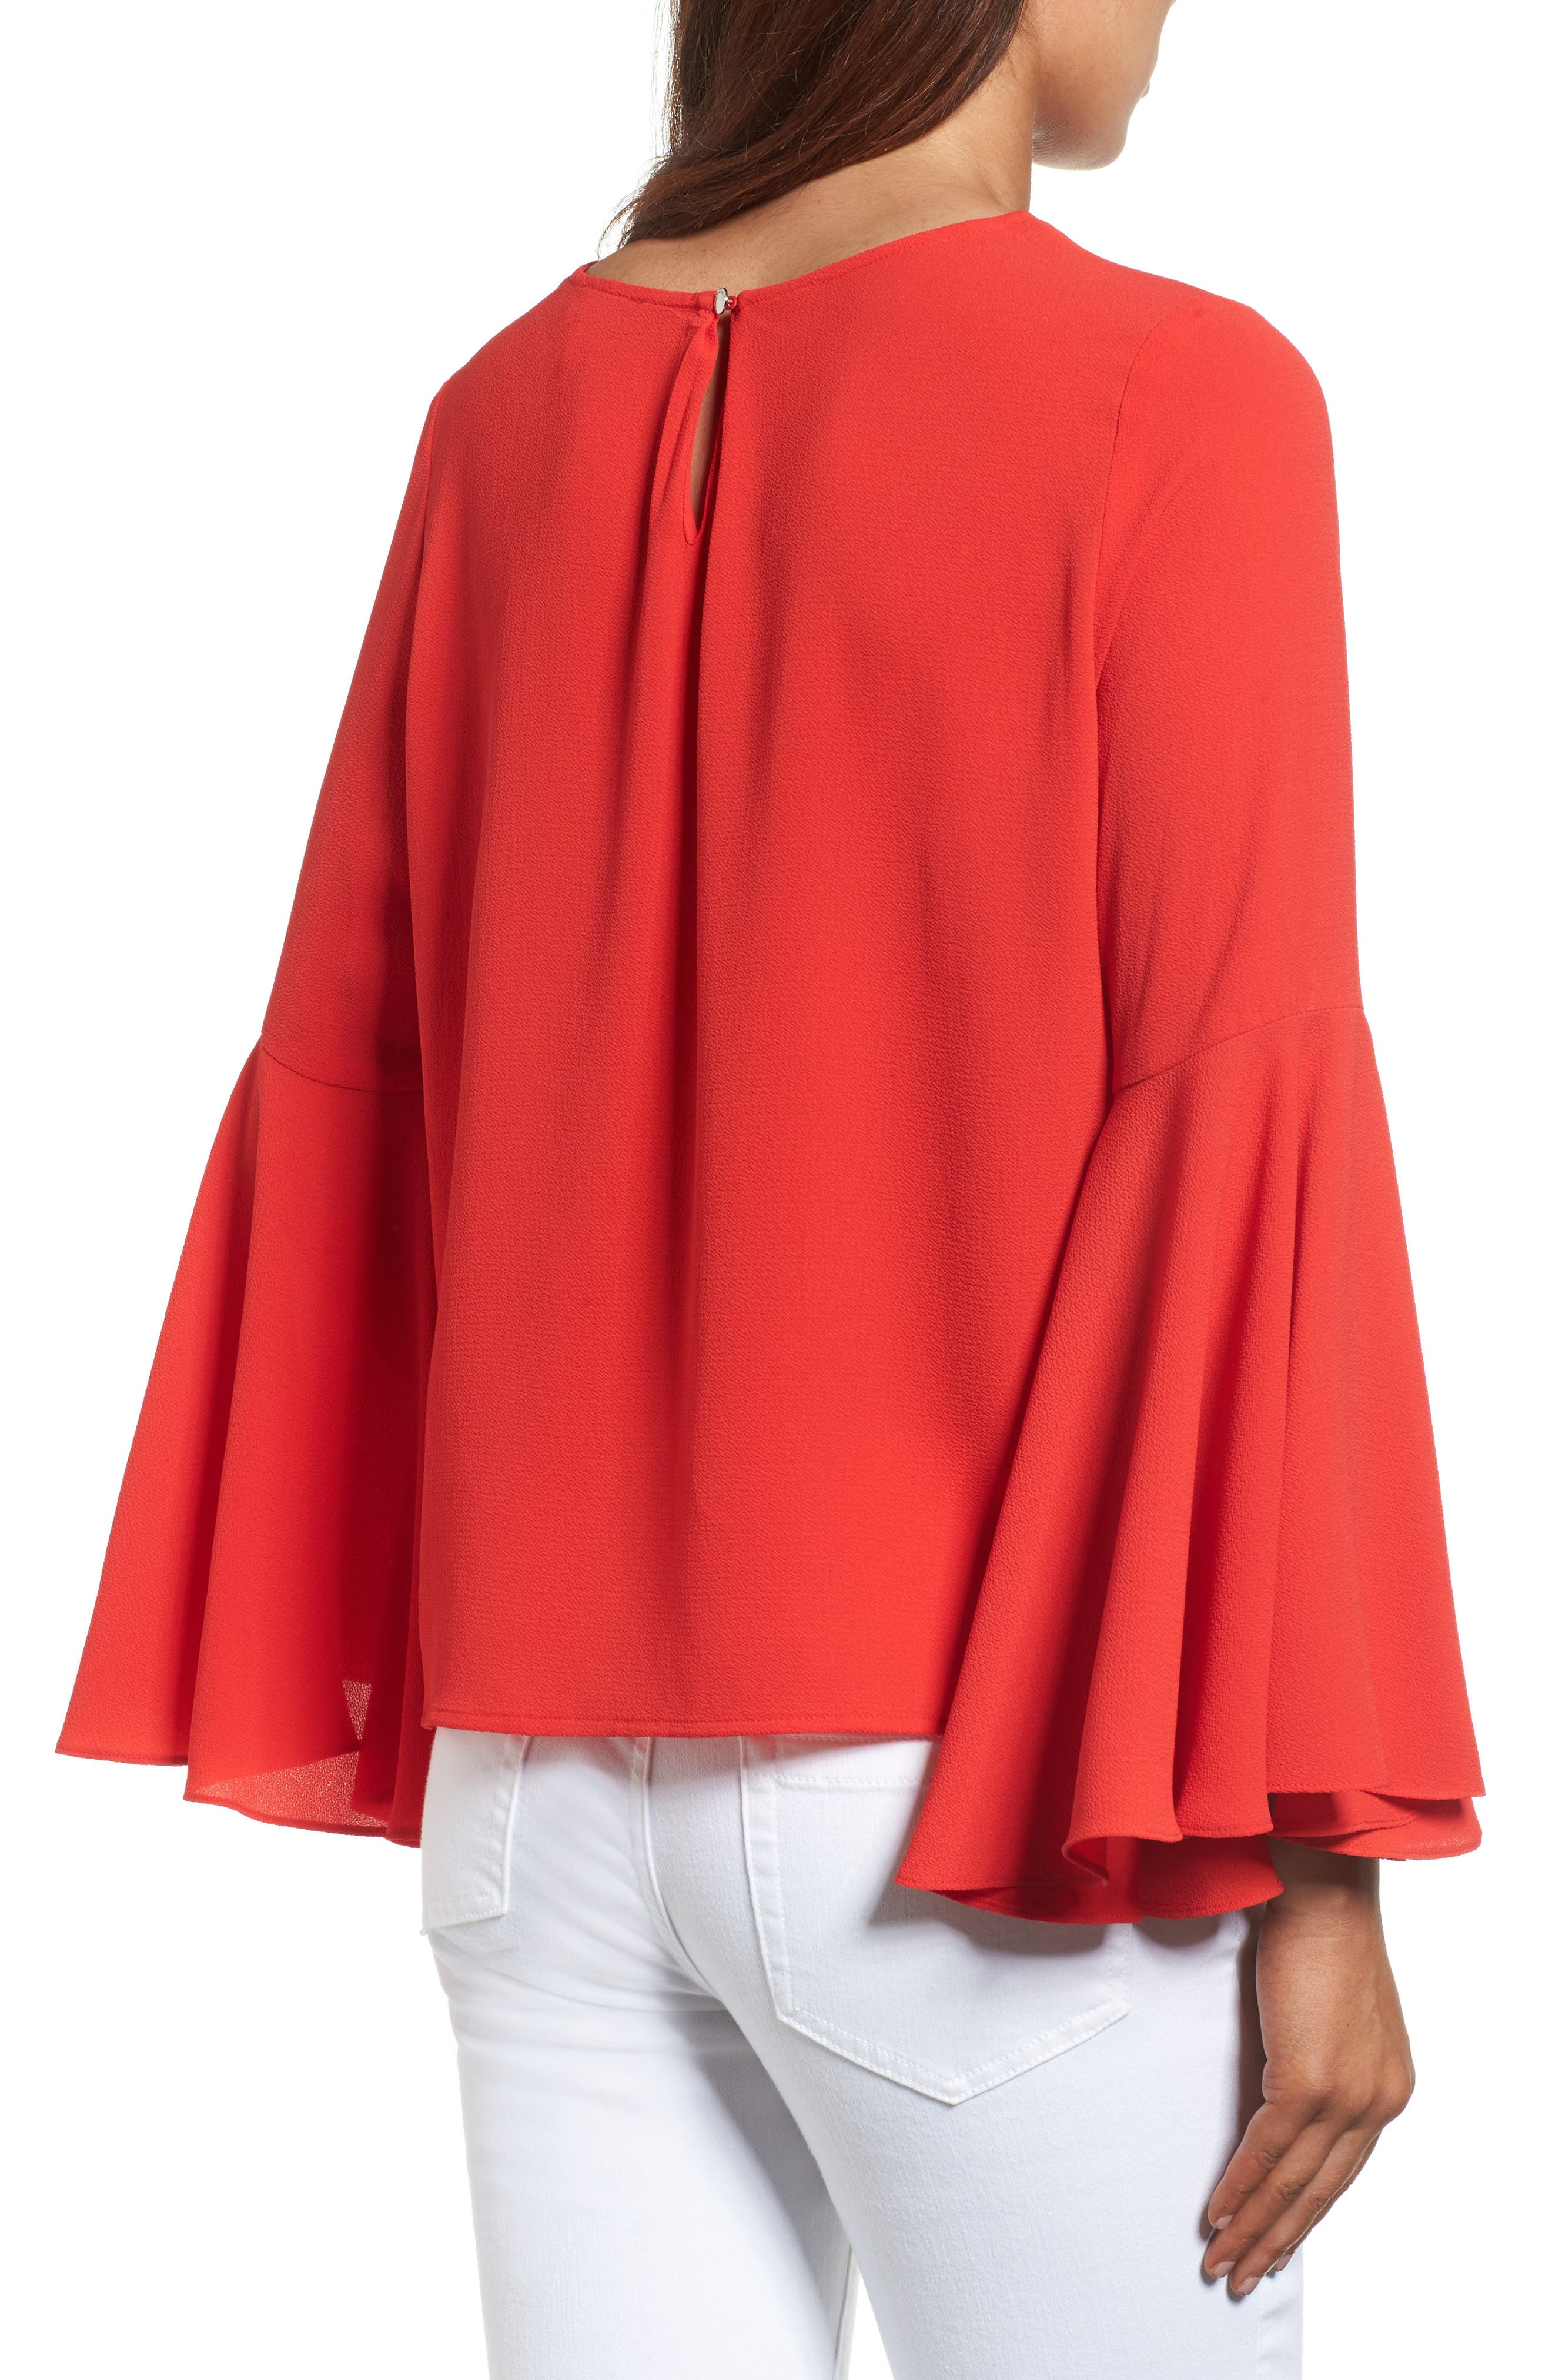 Alternate Image 2  - Vince Camuto Bell Sleeve Blouse (Regular & Petite)